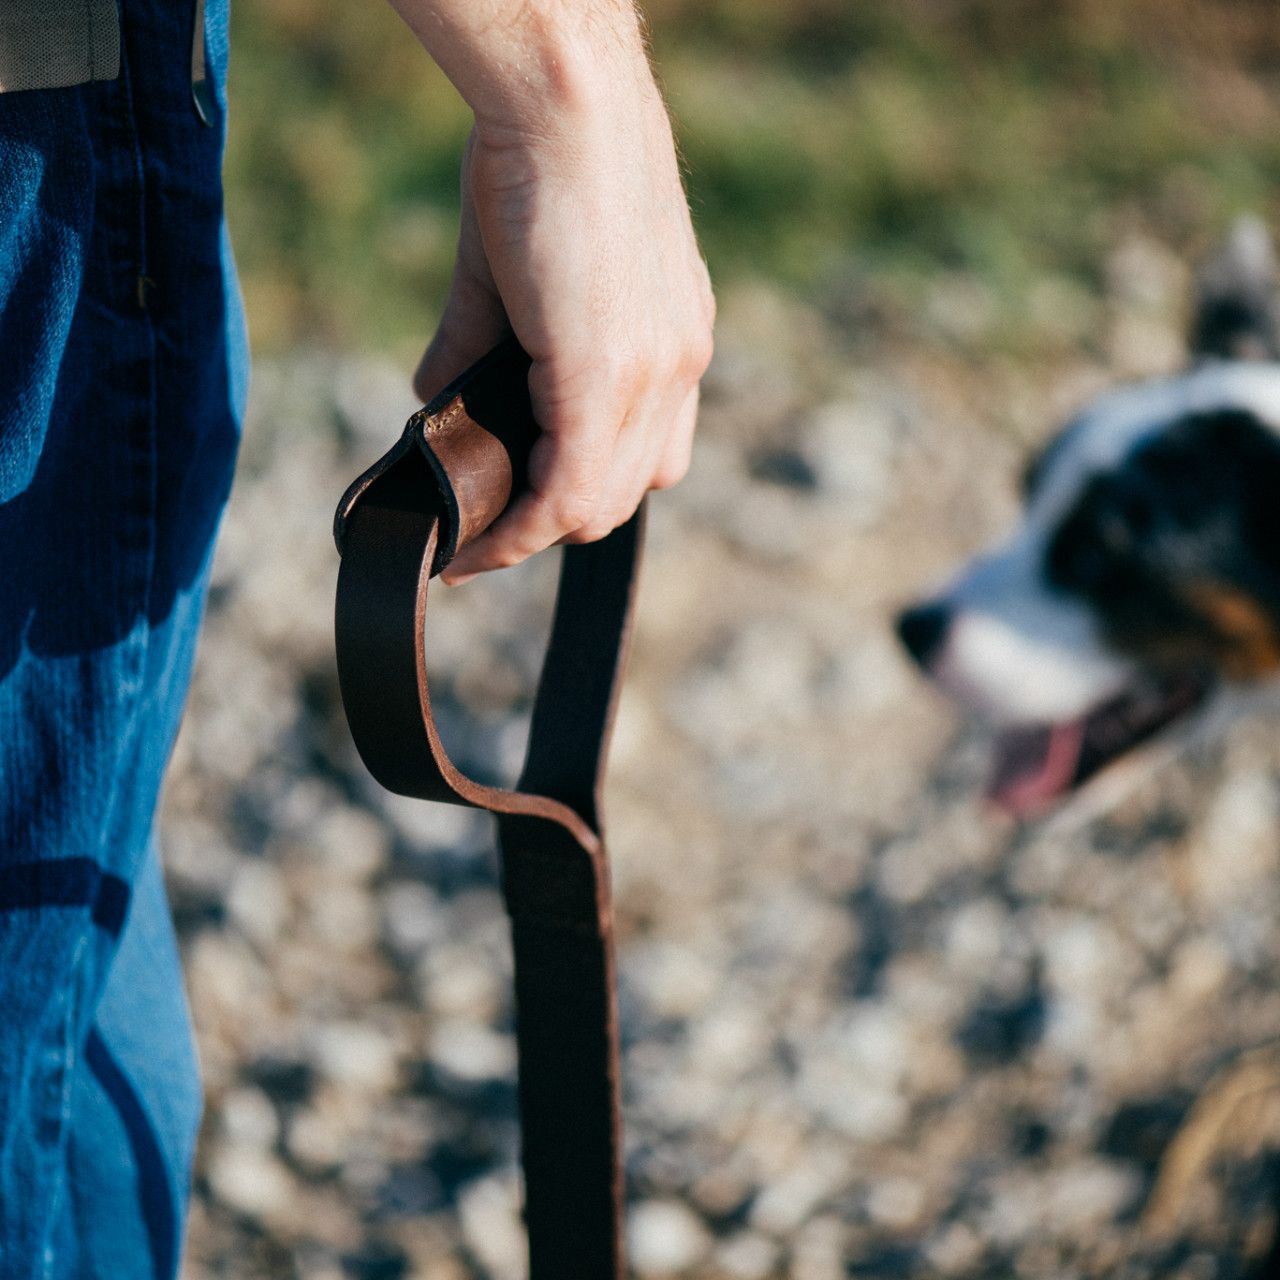 A man in blue trousers holding a leather dog leash in dark coffee brown leather in his hand